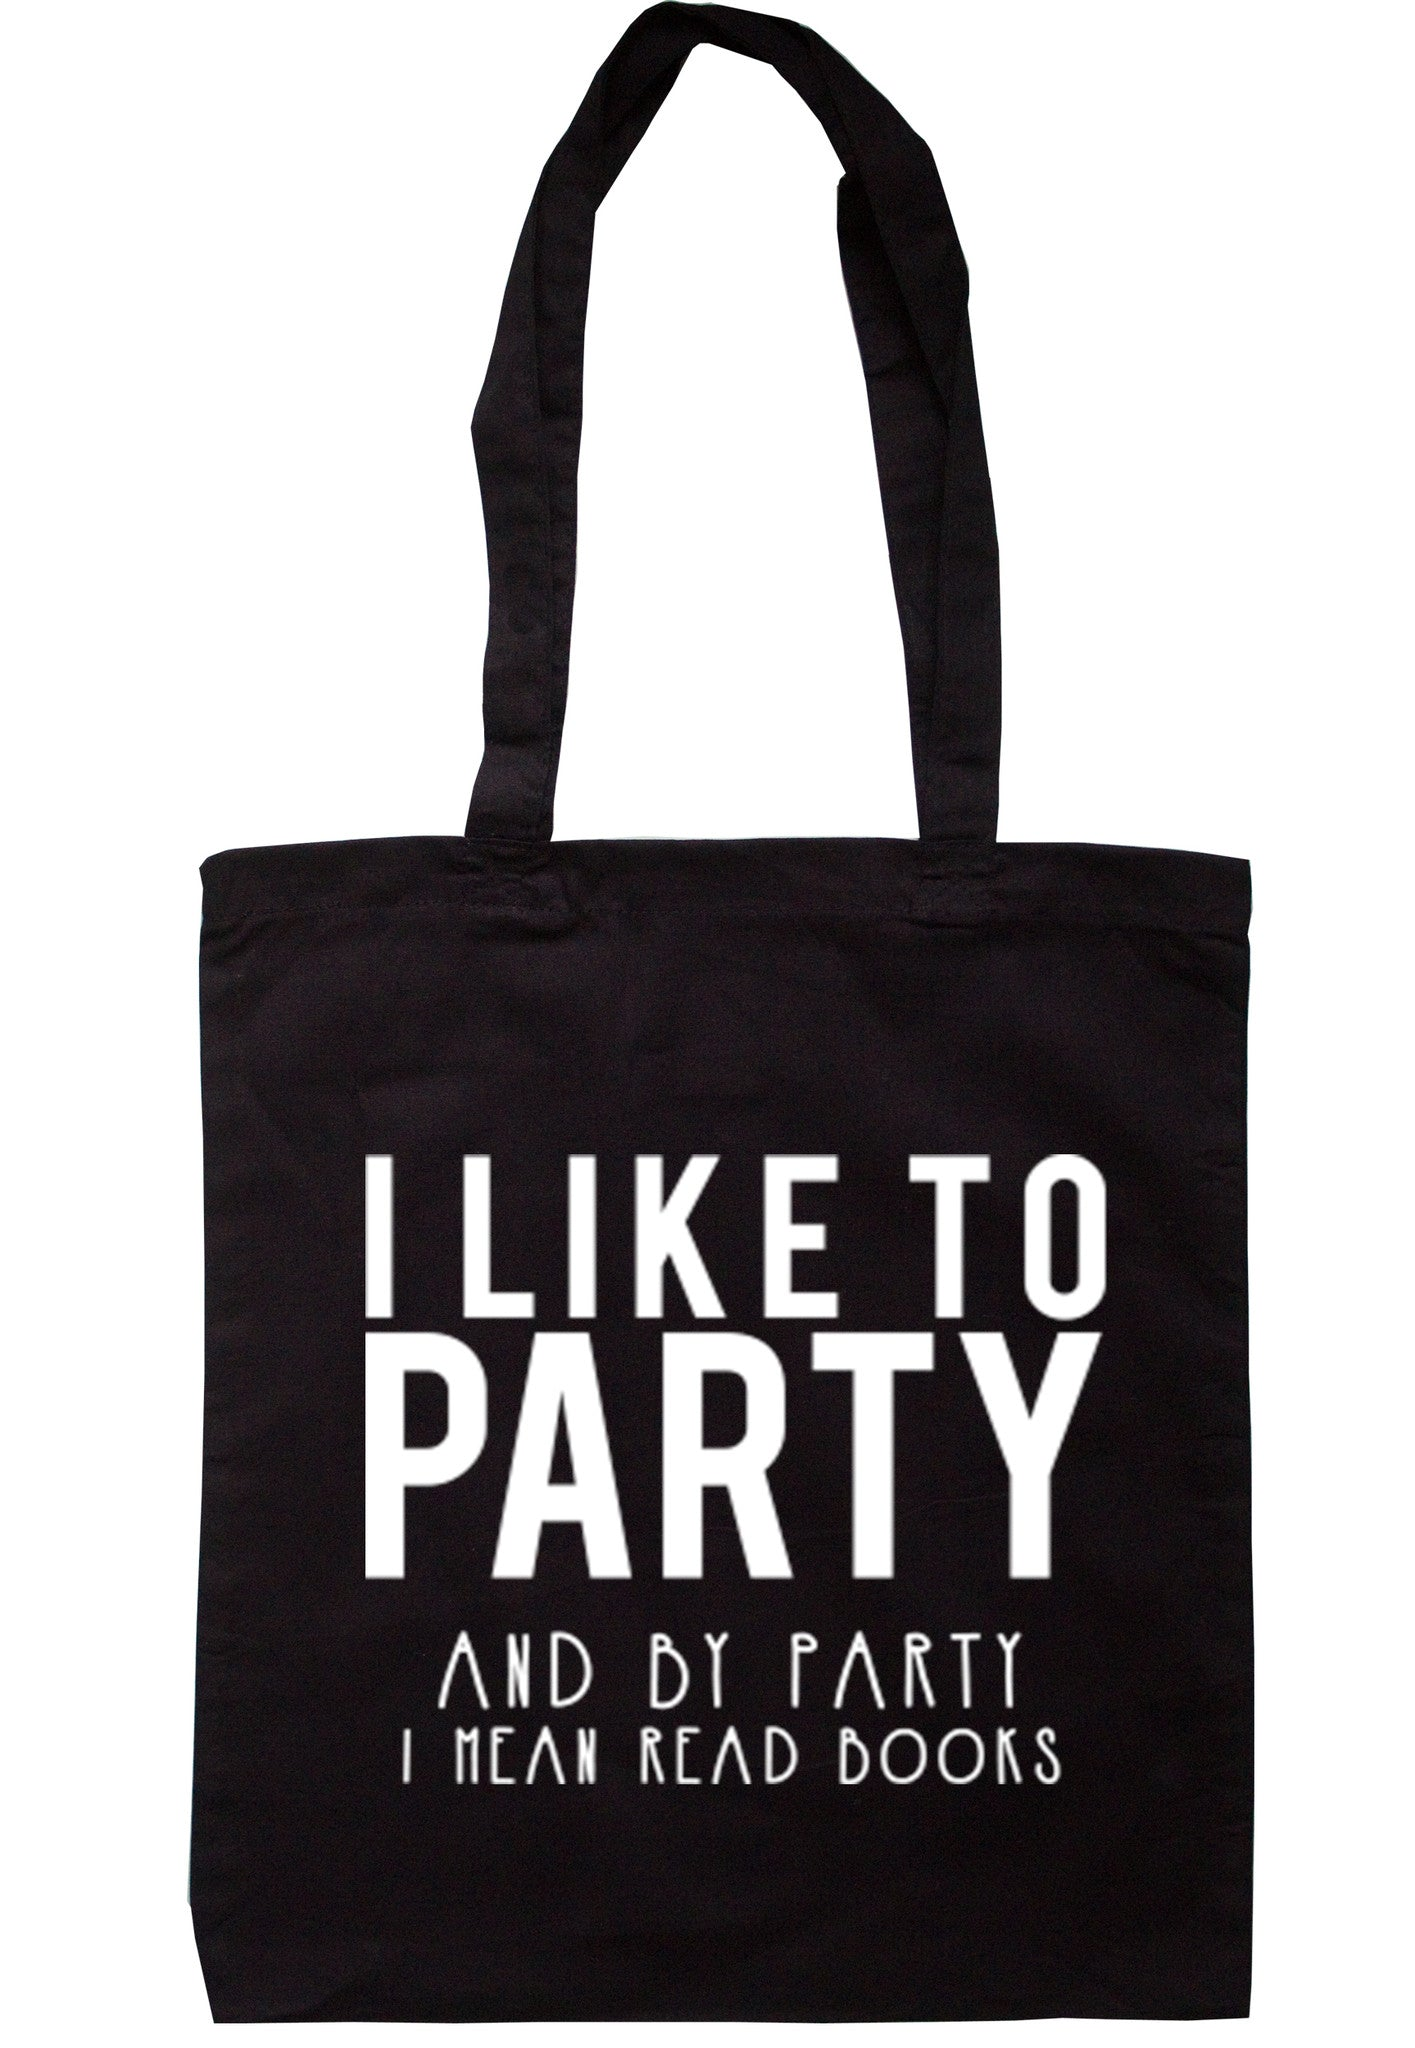 I Like To Party And By Party I Mean Read Books Tote Bag TB0059 - Illustrated Identity Ltd.